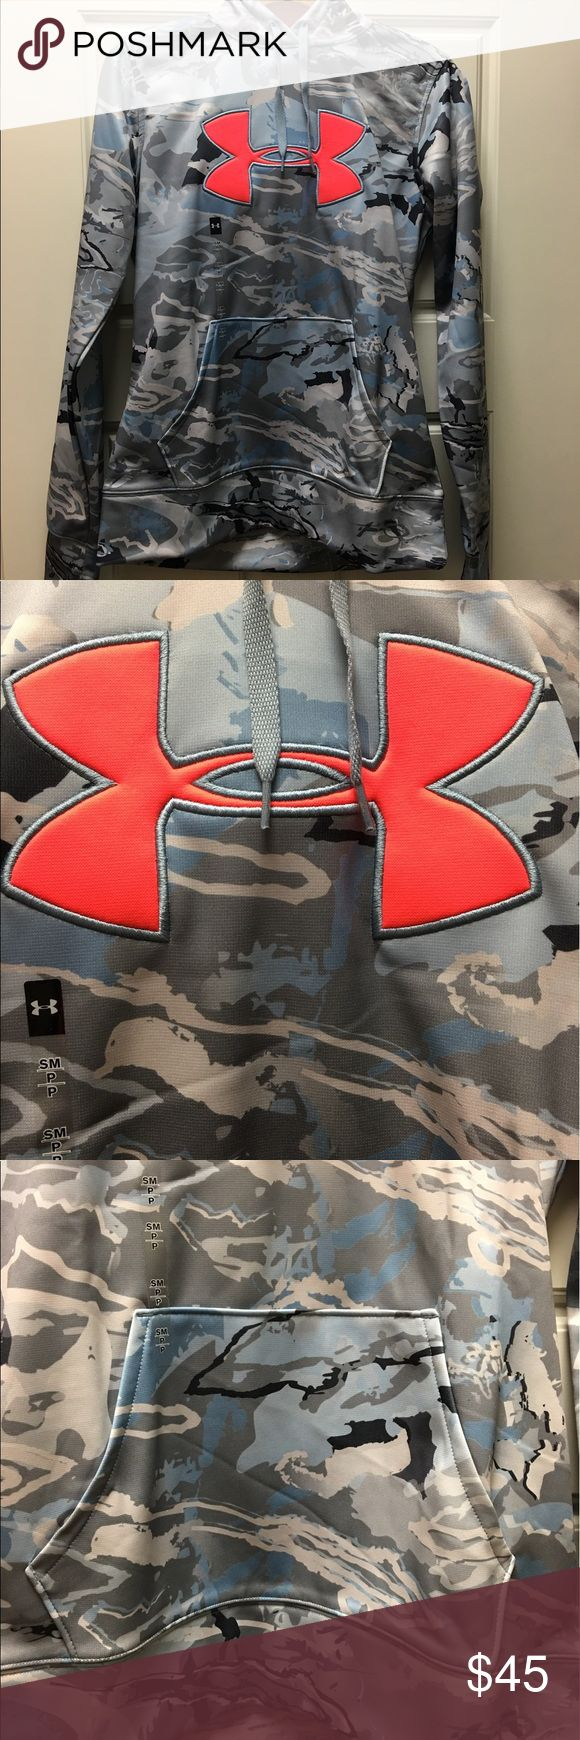 UNDER ARMOUR FLEECE CAMO BIG LOGO WOMEN'S HOODIE Loose: Generous, more relaxed fit. UA Storm 1: Water-Resistant Armour® Fleece construction delivers a brushed inner layer & a smooth, quick-dry outer layer Signature Moisture Transport System wicks sweat to keep you dry & light Lined adjustable hood with crossover neckline for easy on/off Front kangaroo pocket Allover camo print Polyester Under Armour Tops Sweatshirts & Hoodies